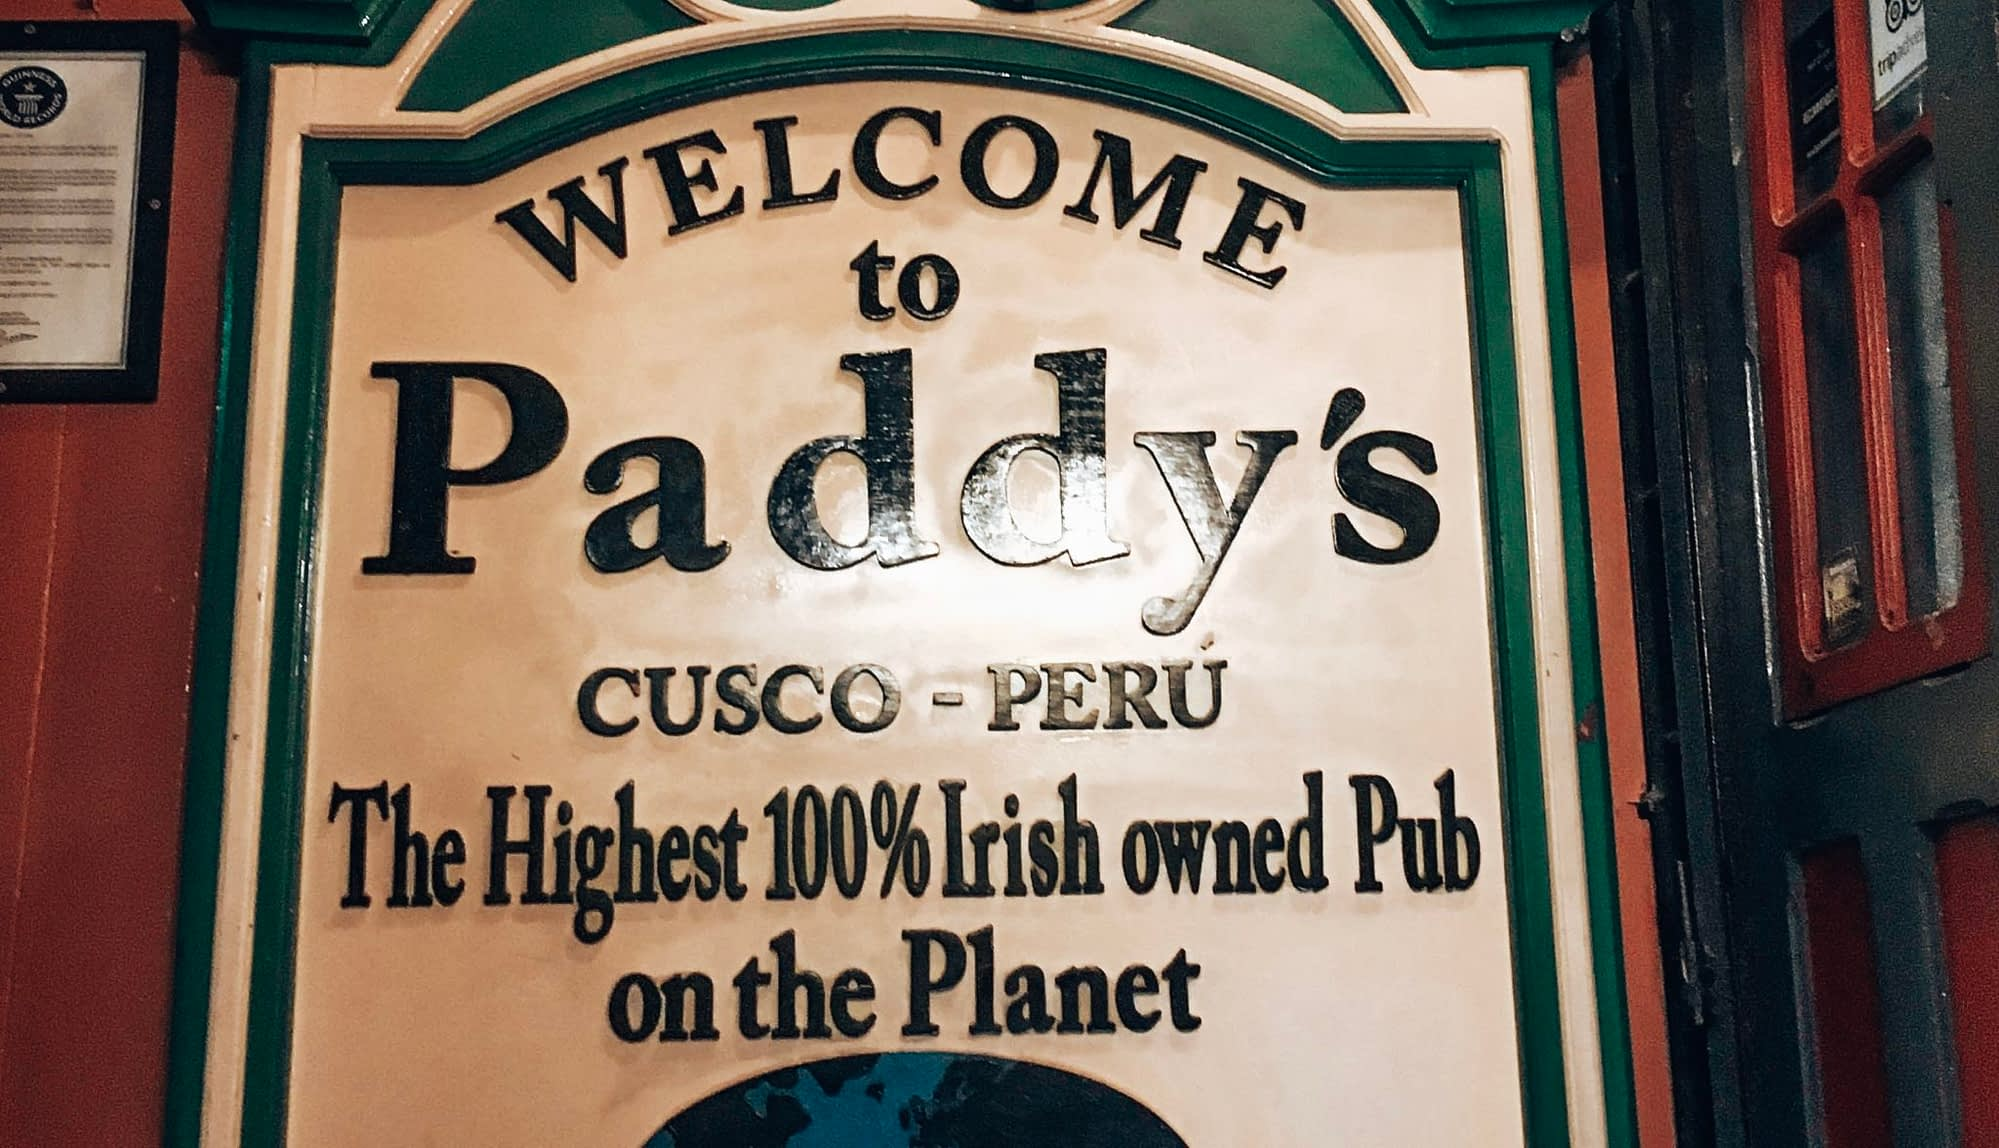 Highest Irish Pub in The World